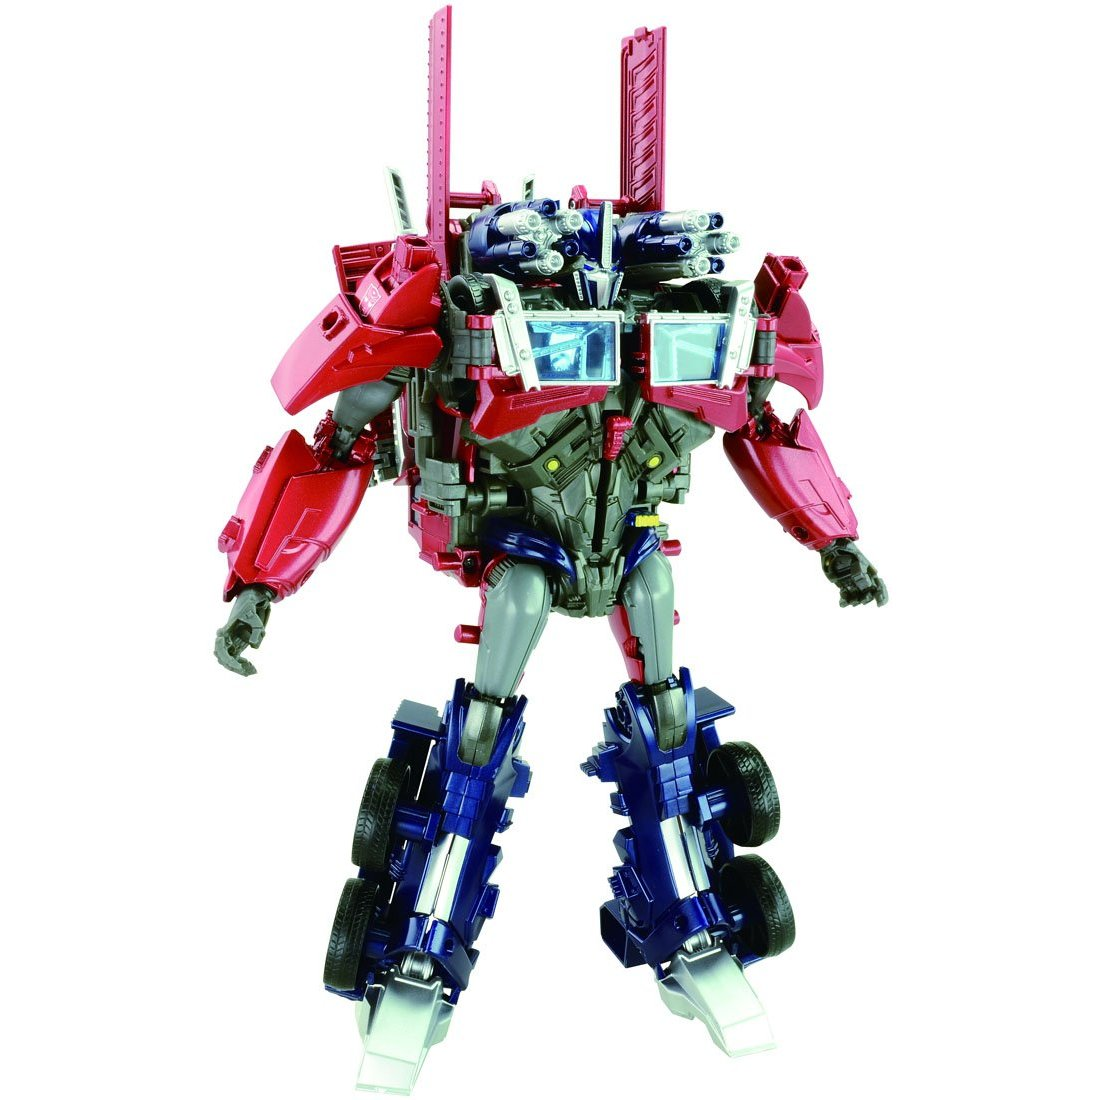 Optimus Prime (Arms Master) with Matrix and Shining R.A. Image